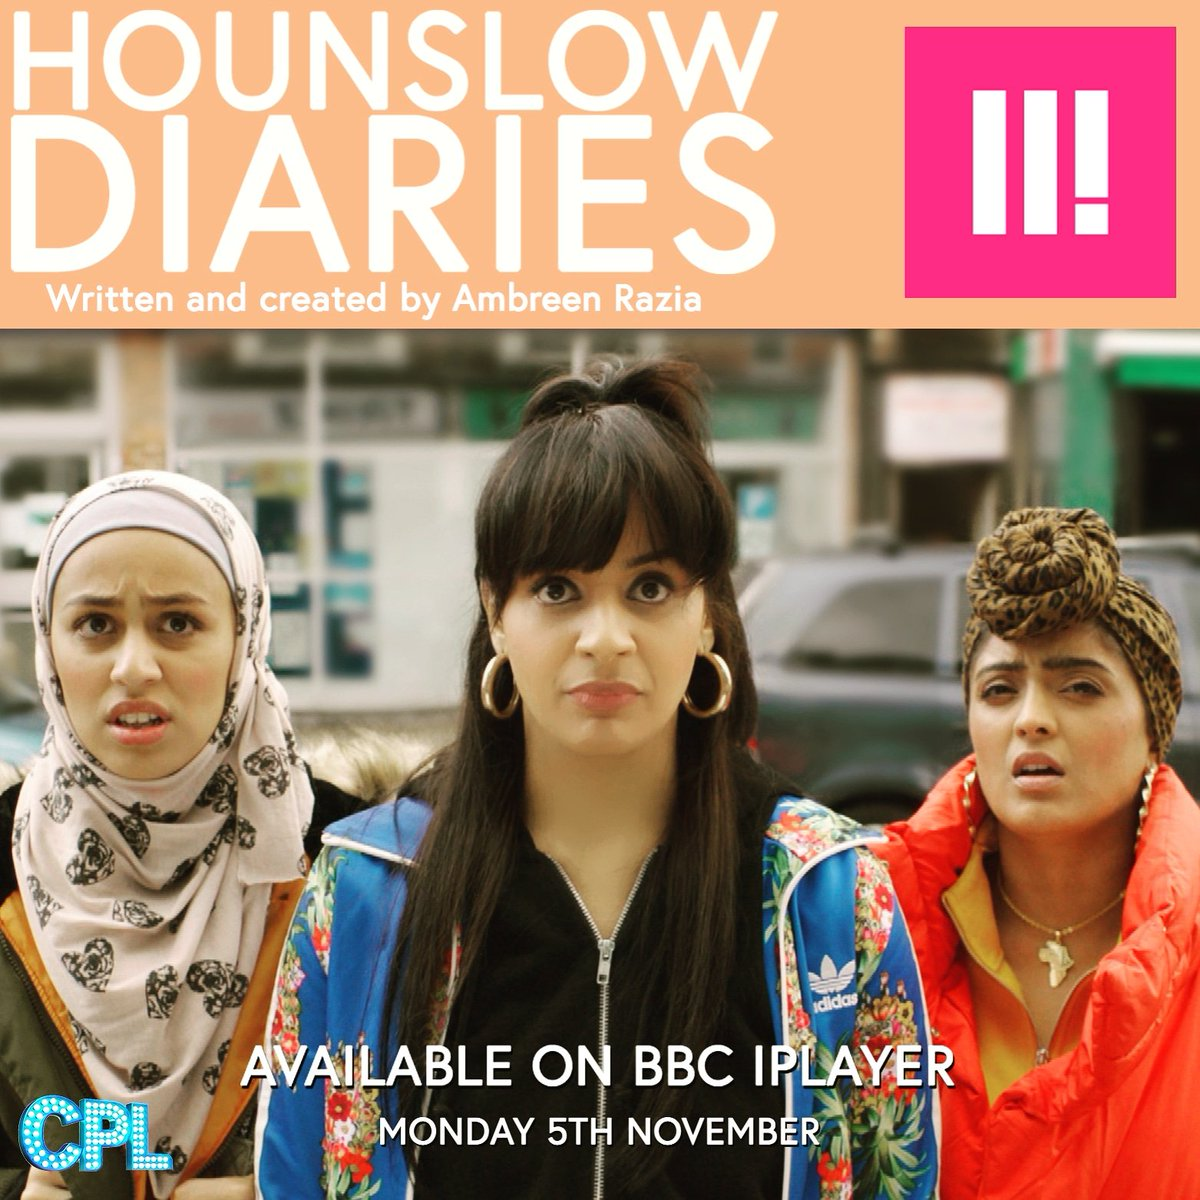 3. Ambreen Razia - Muslim identity, Hounslow Diaries and gang culture